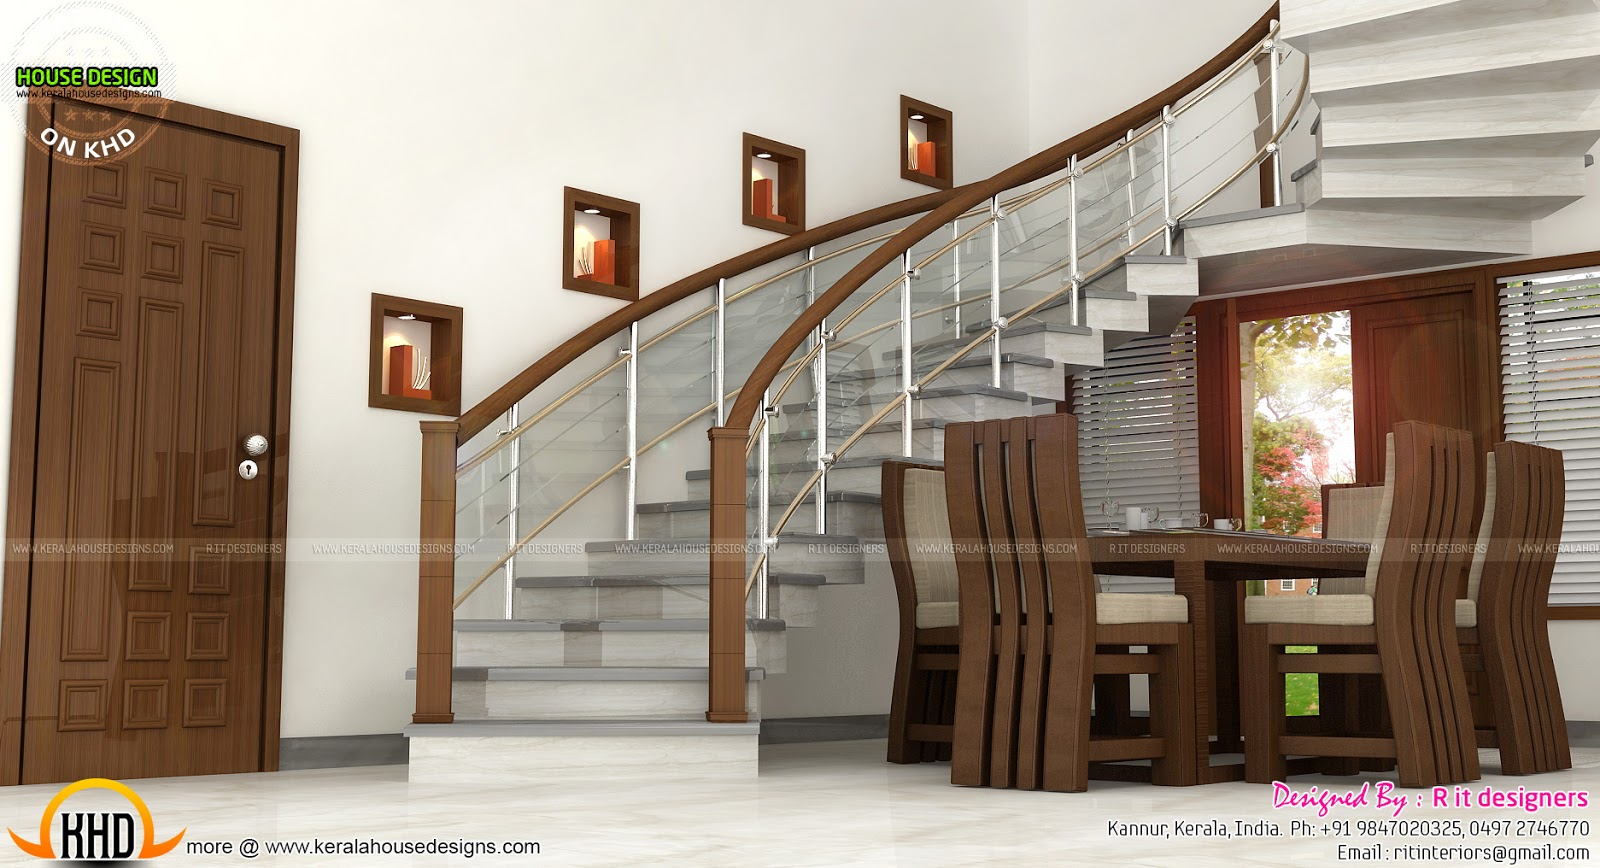 June 2015 kerala home design and floor plans House model interior design